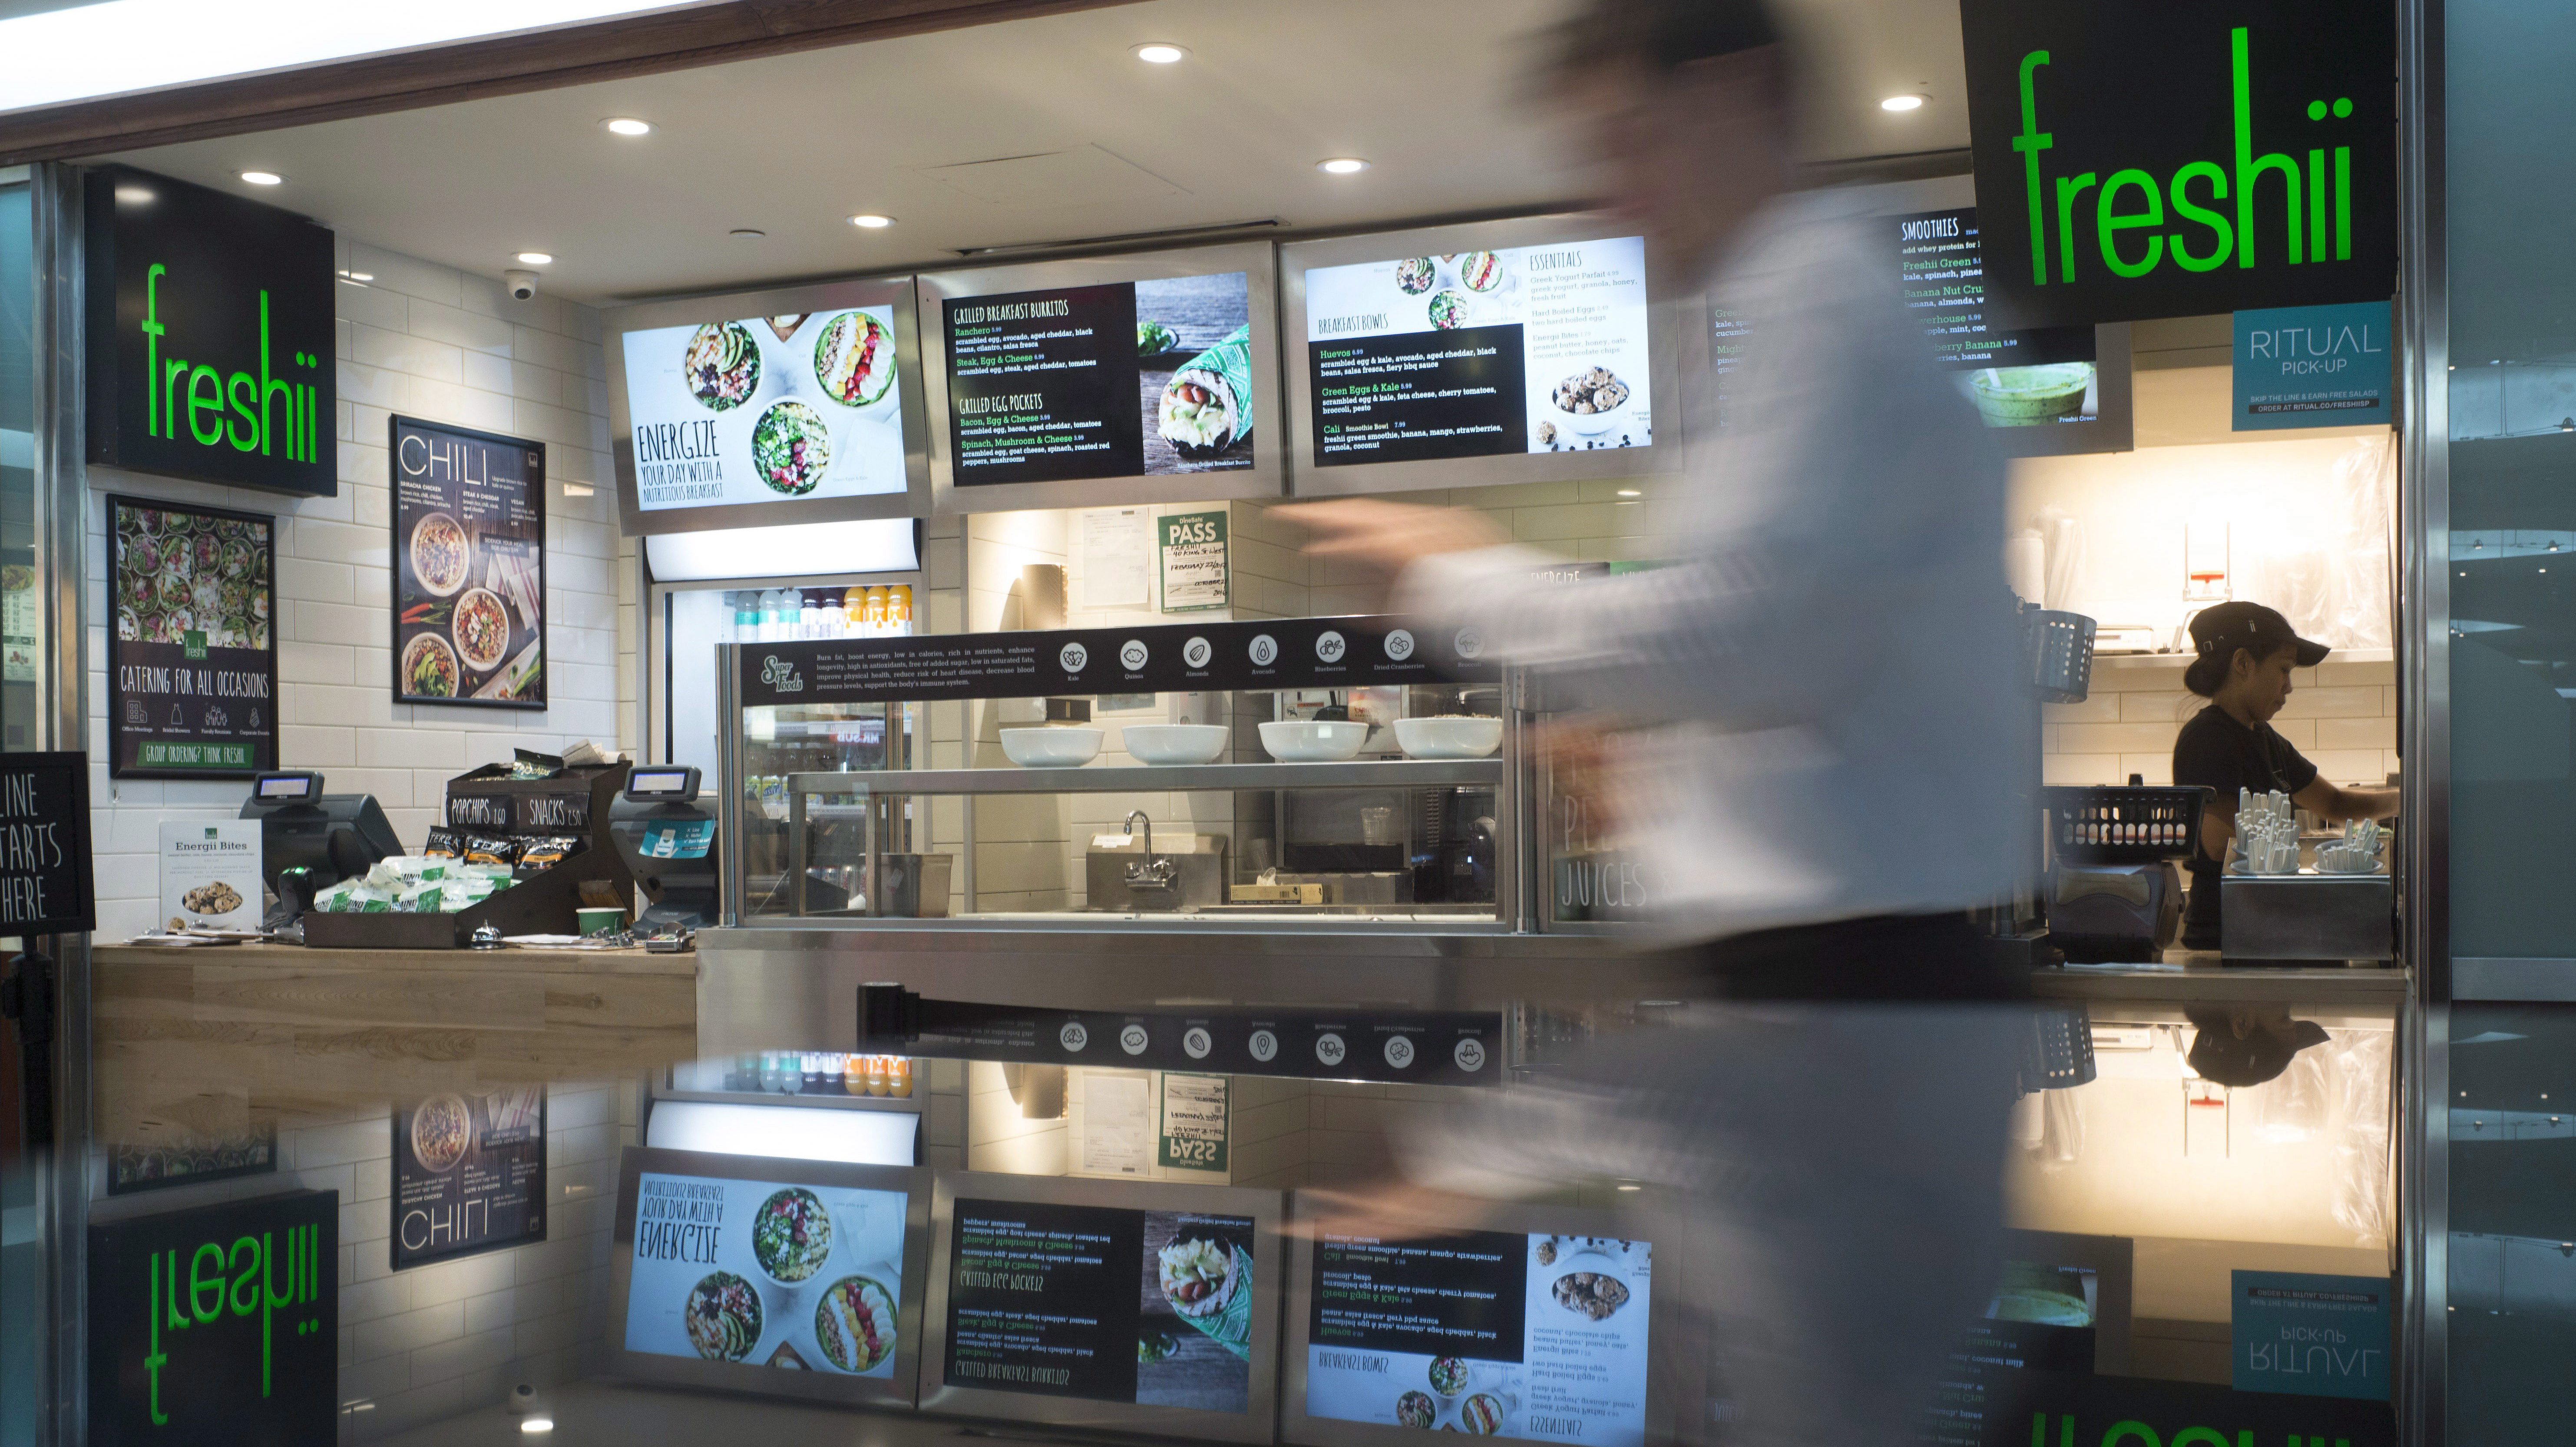 freshii proposes partnership with subway in open letter - 680 news